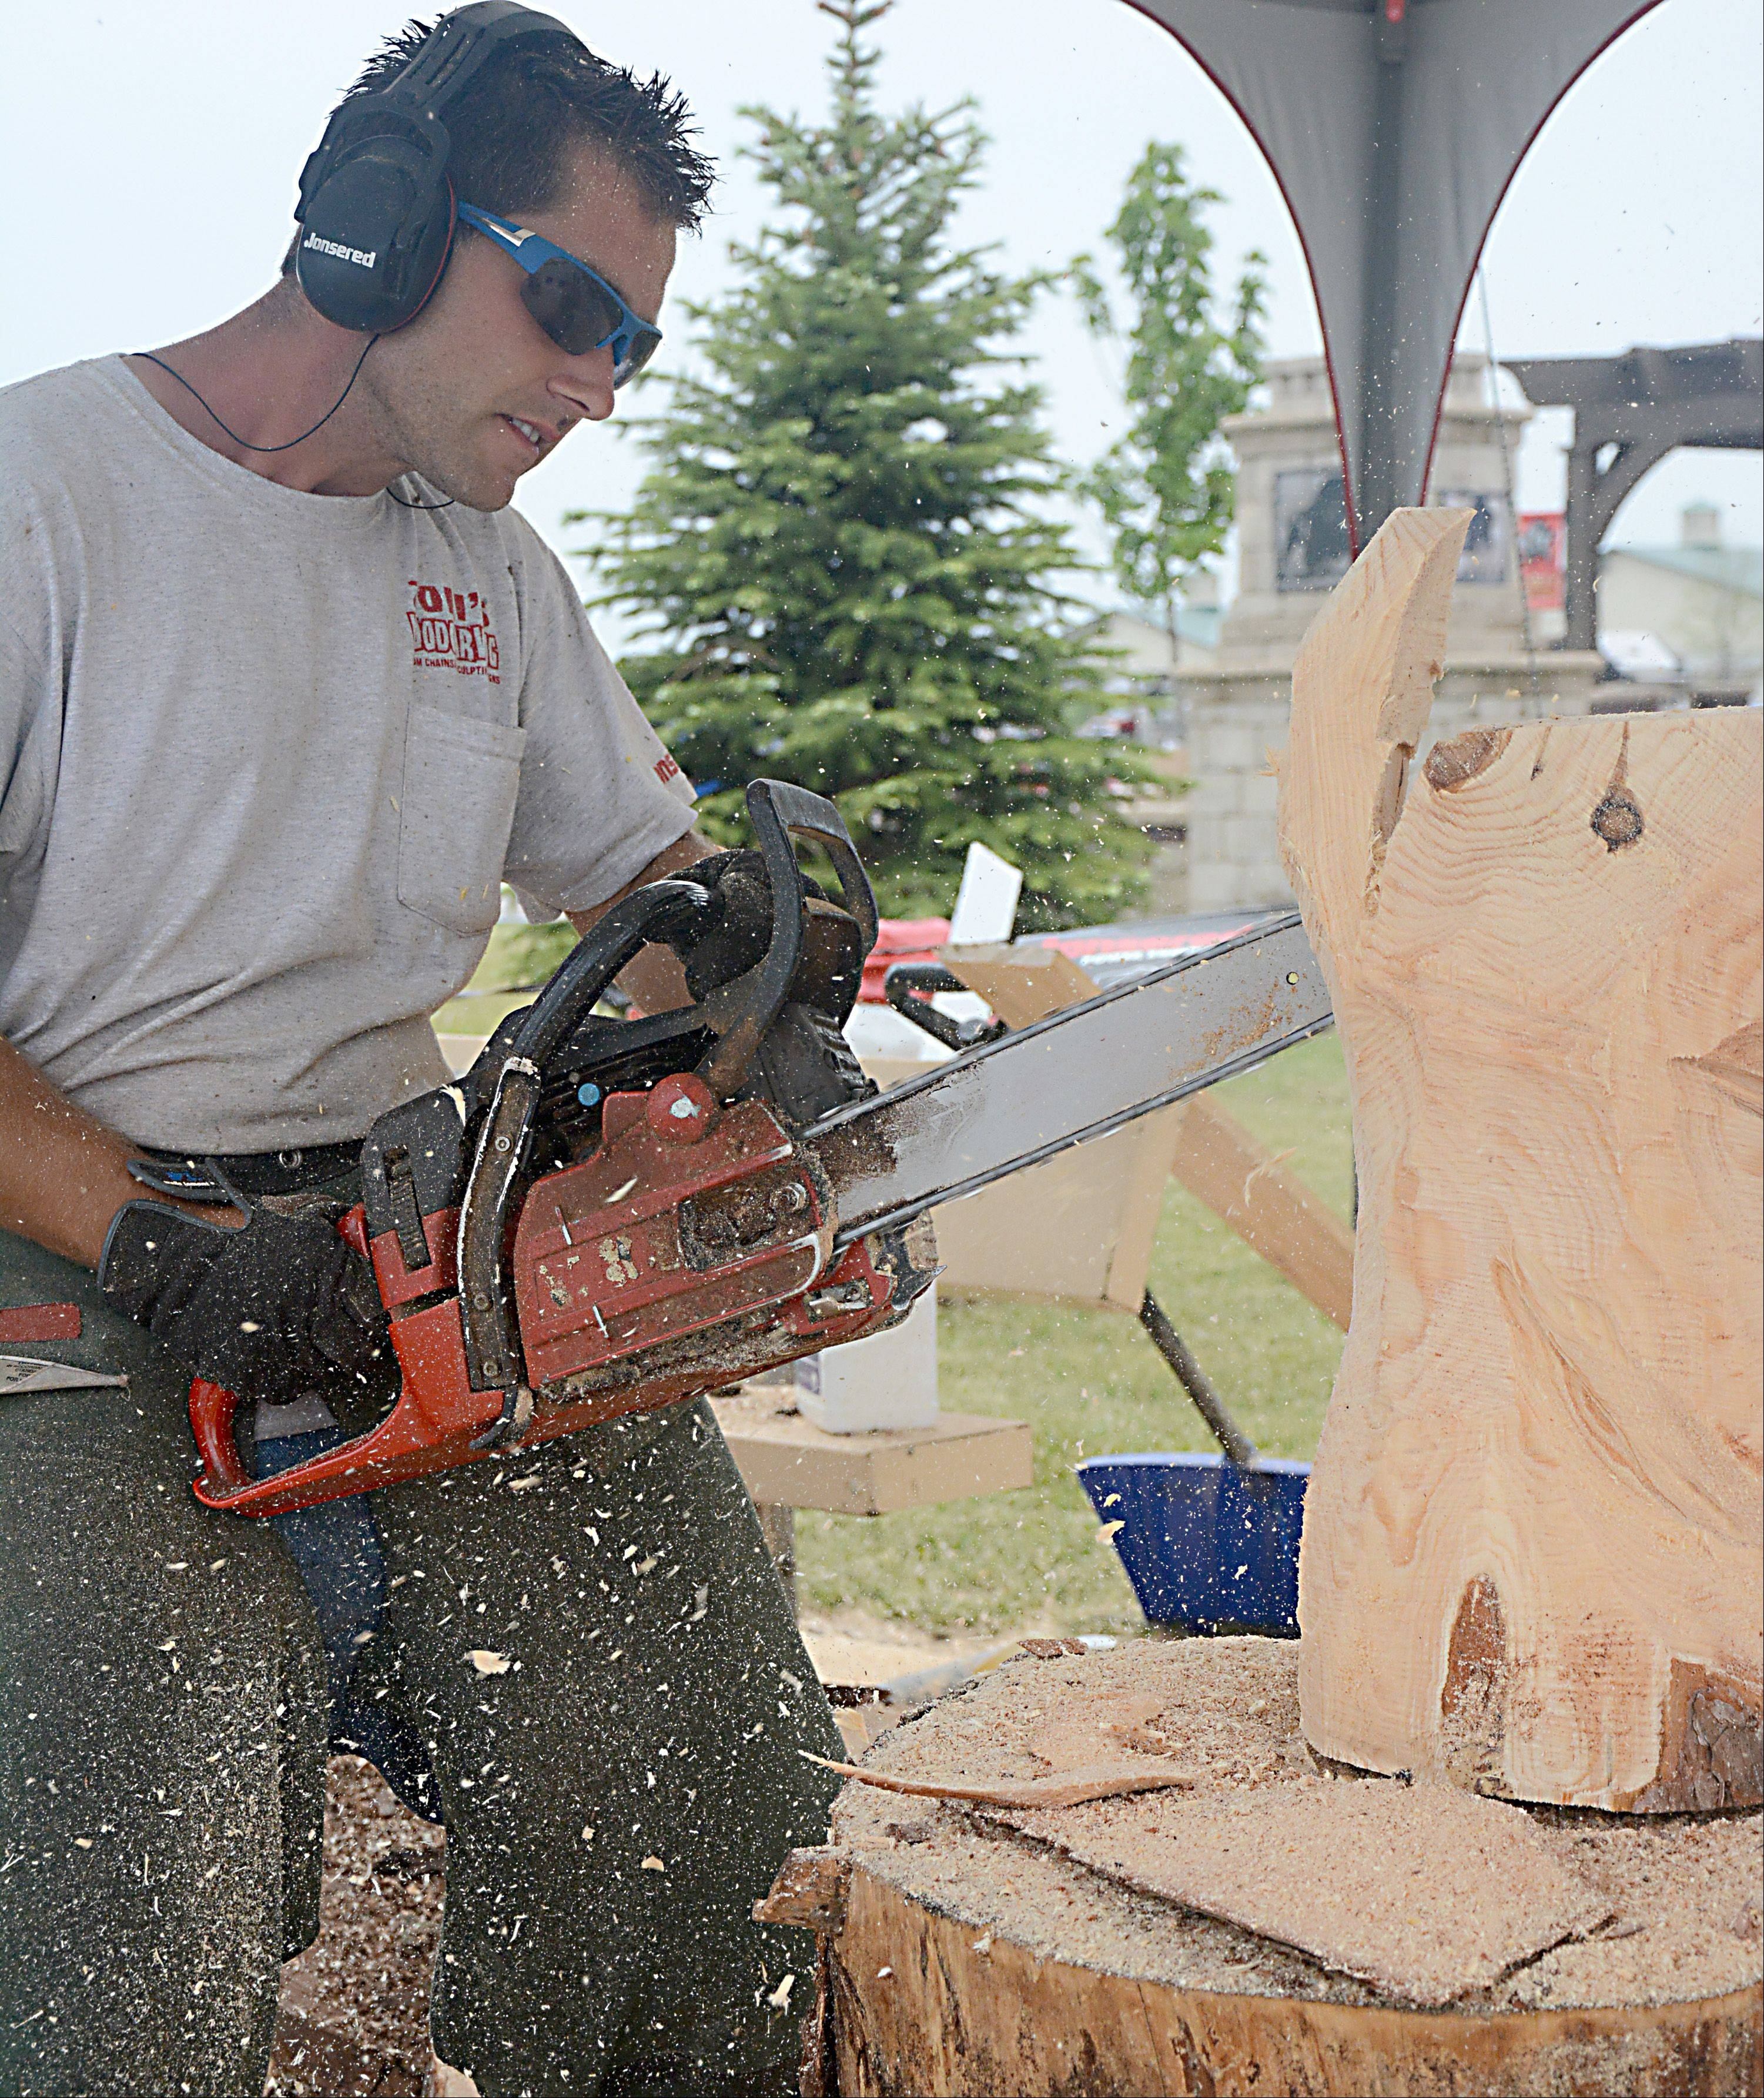 Zoli Akacsos of Monroe, Wis., carves a bear into wood using a chain saw.